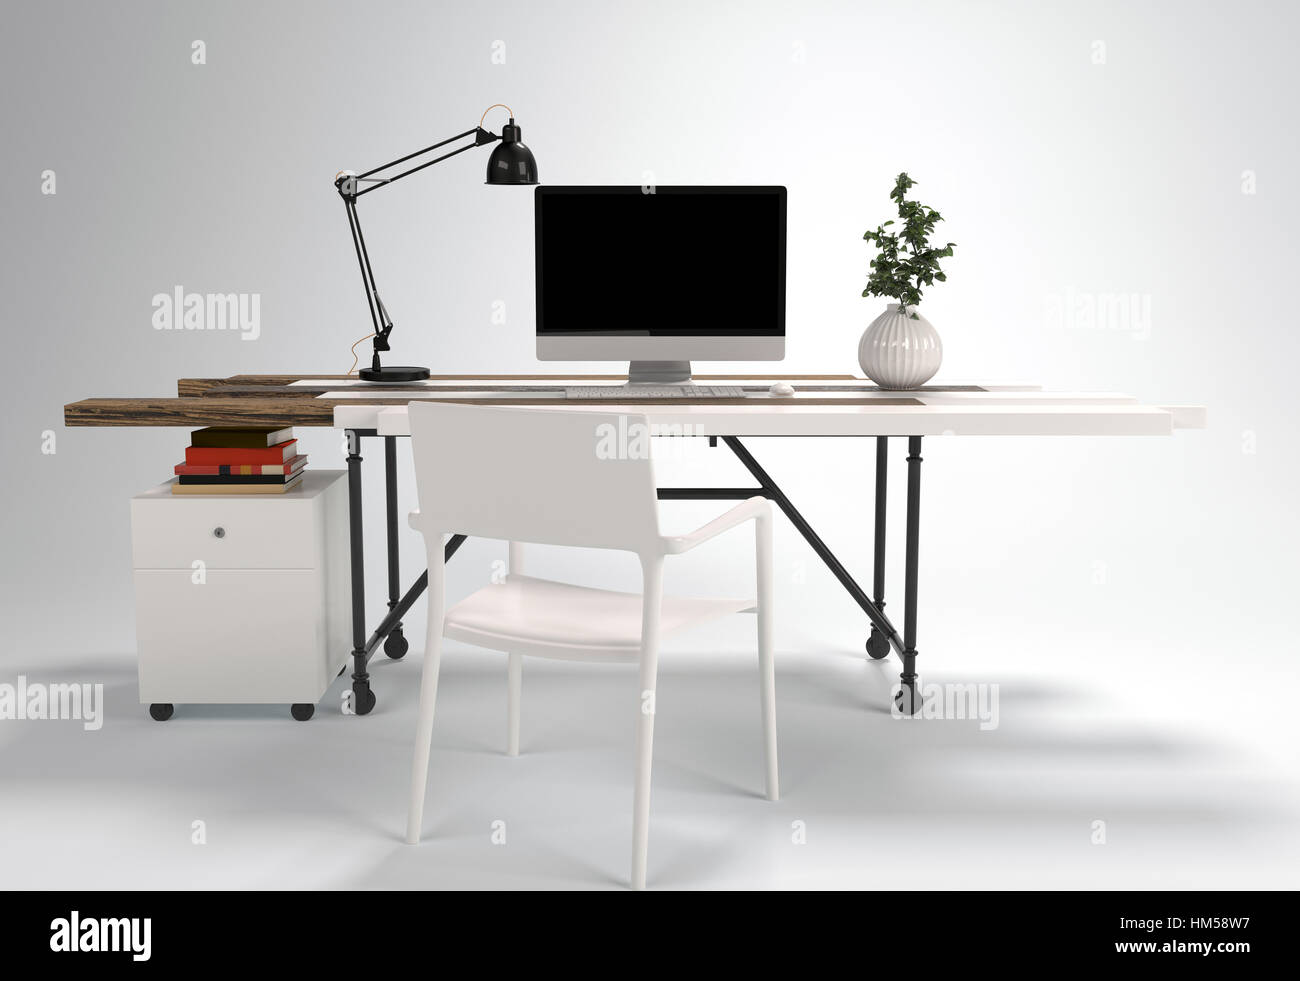 Working Desk With Chair Computer Lamp And Plant Isolated